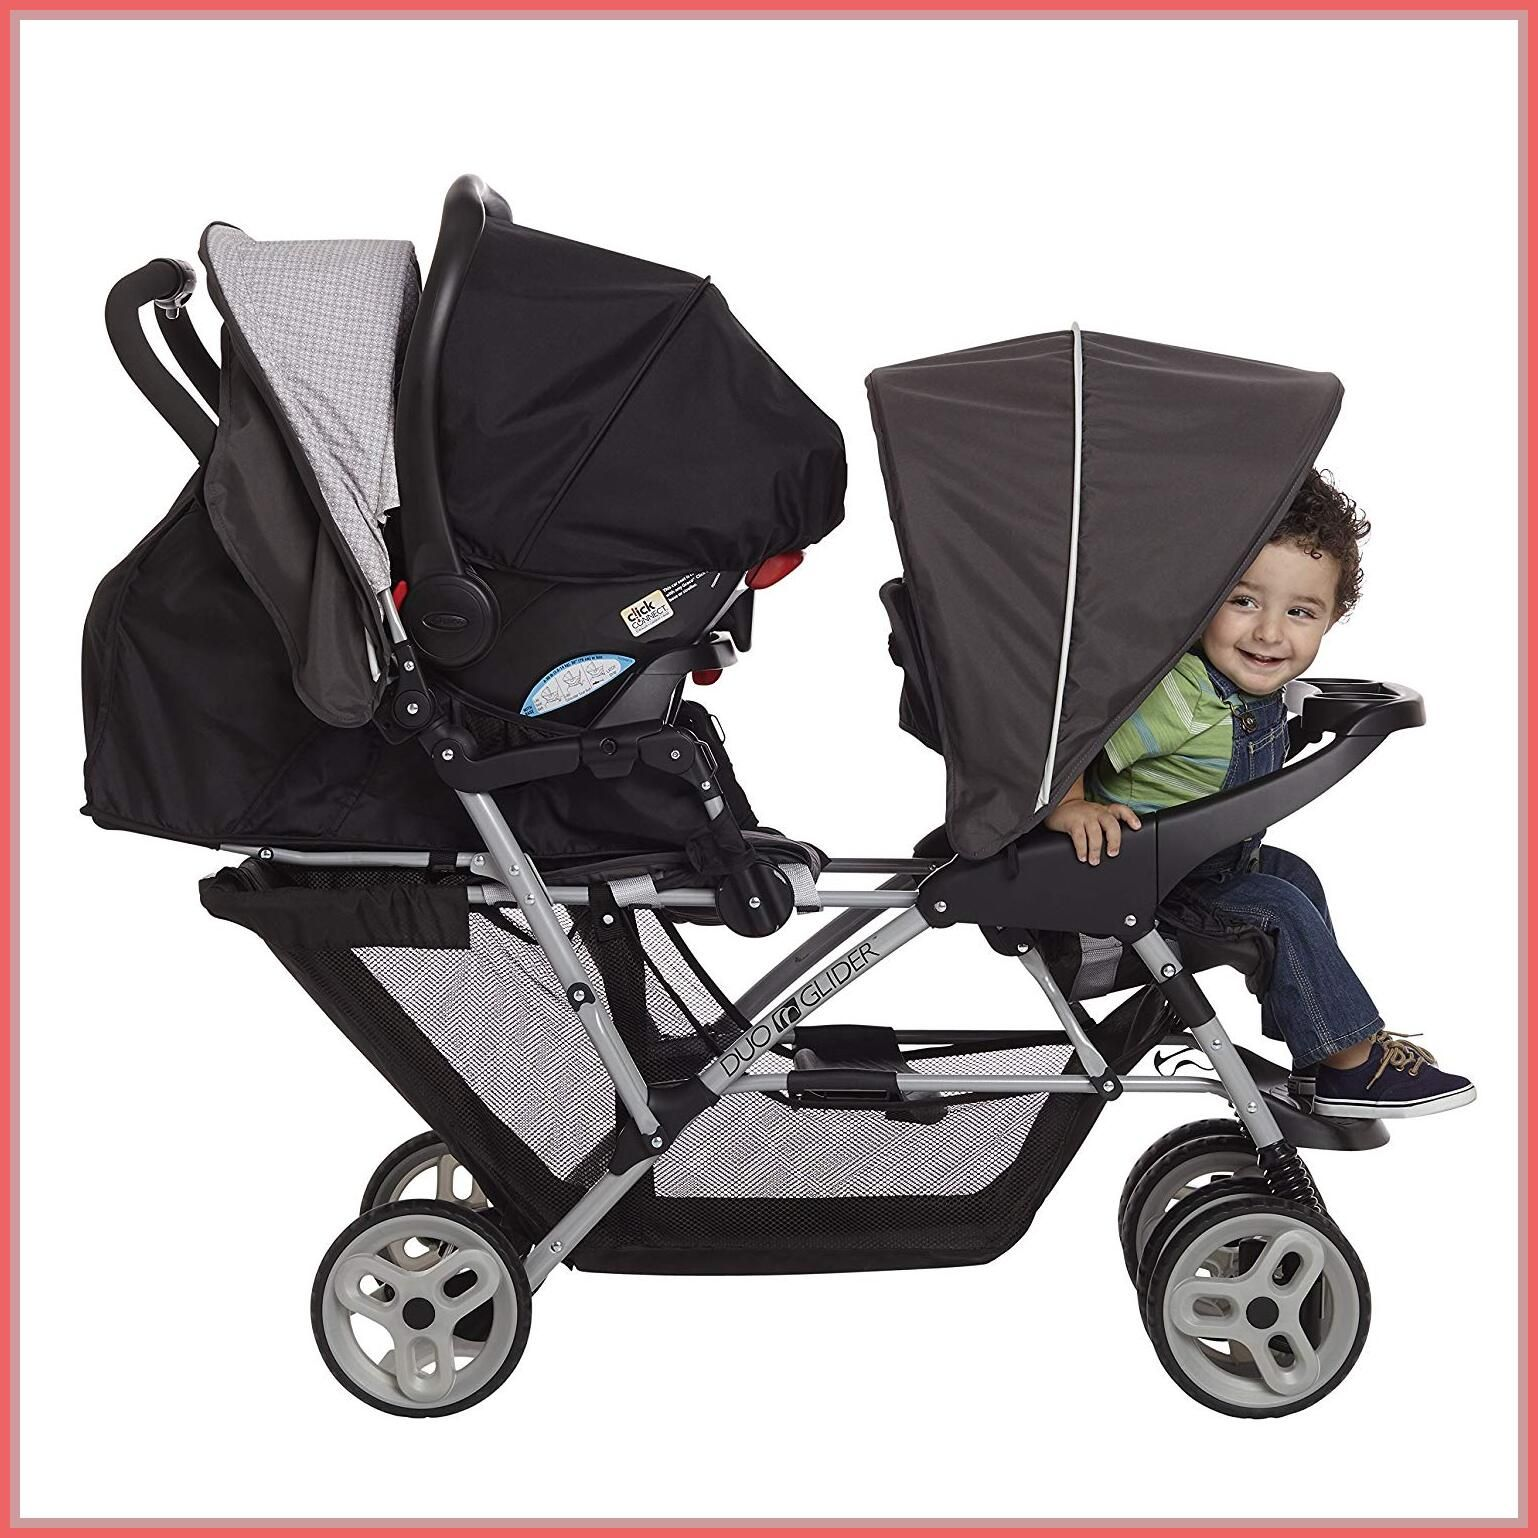 98 reference of graco duoglider stroller in 2020